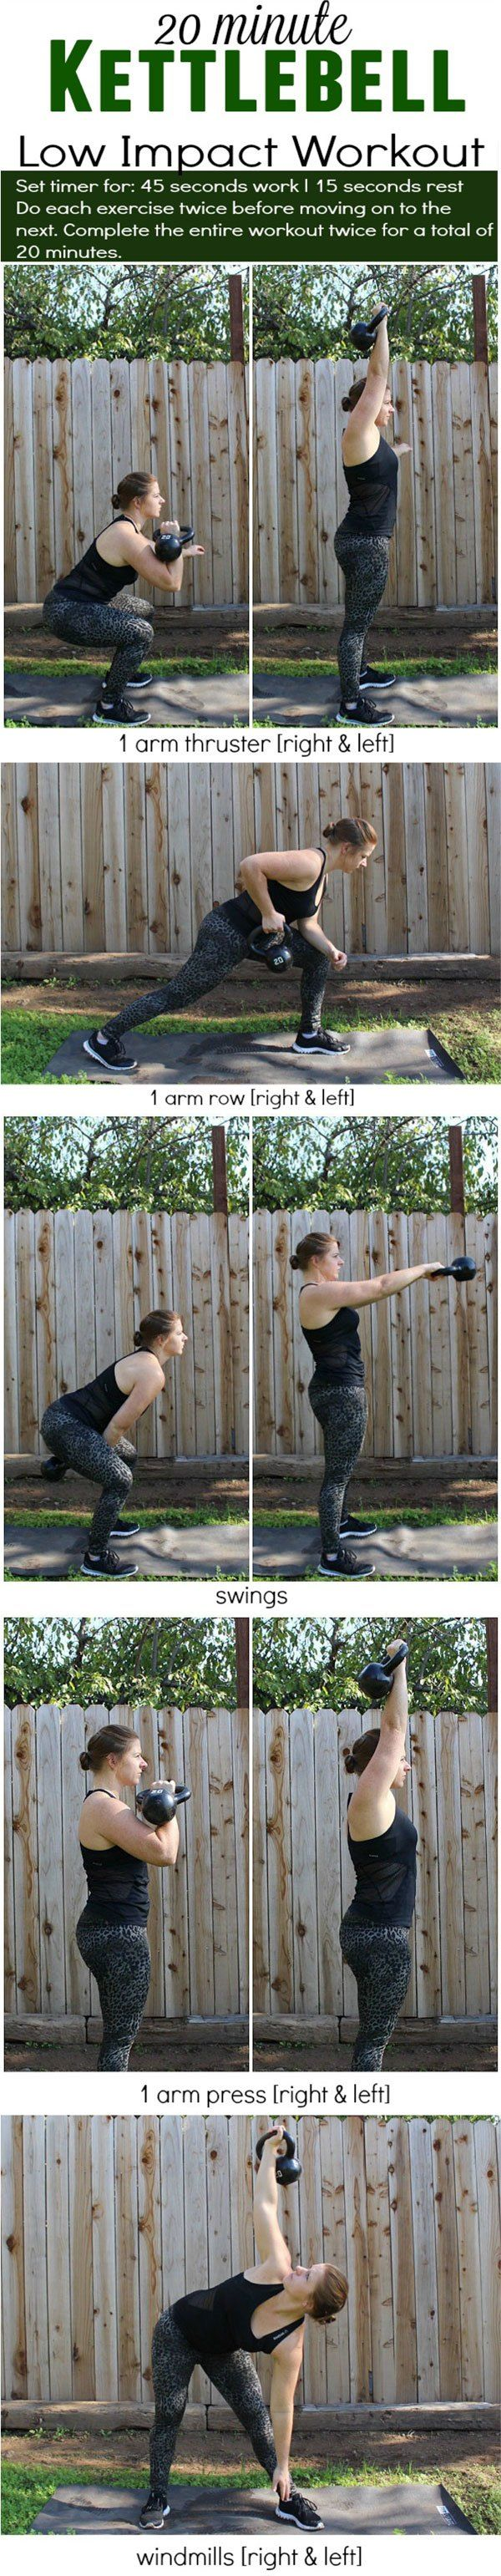 Kettlebell Low Impact Workout